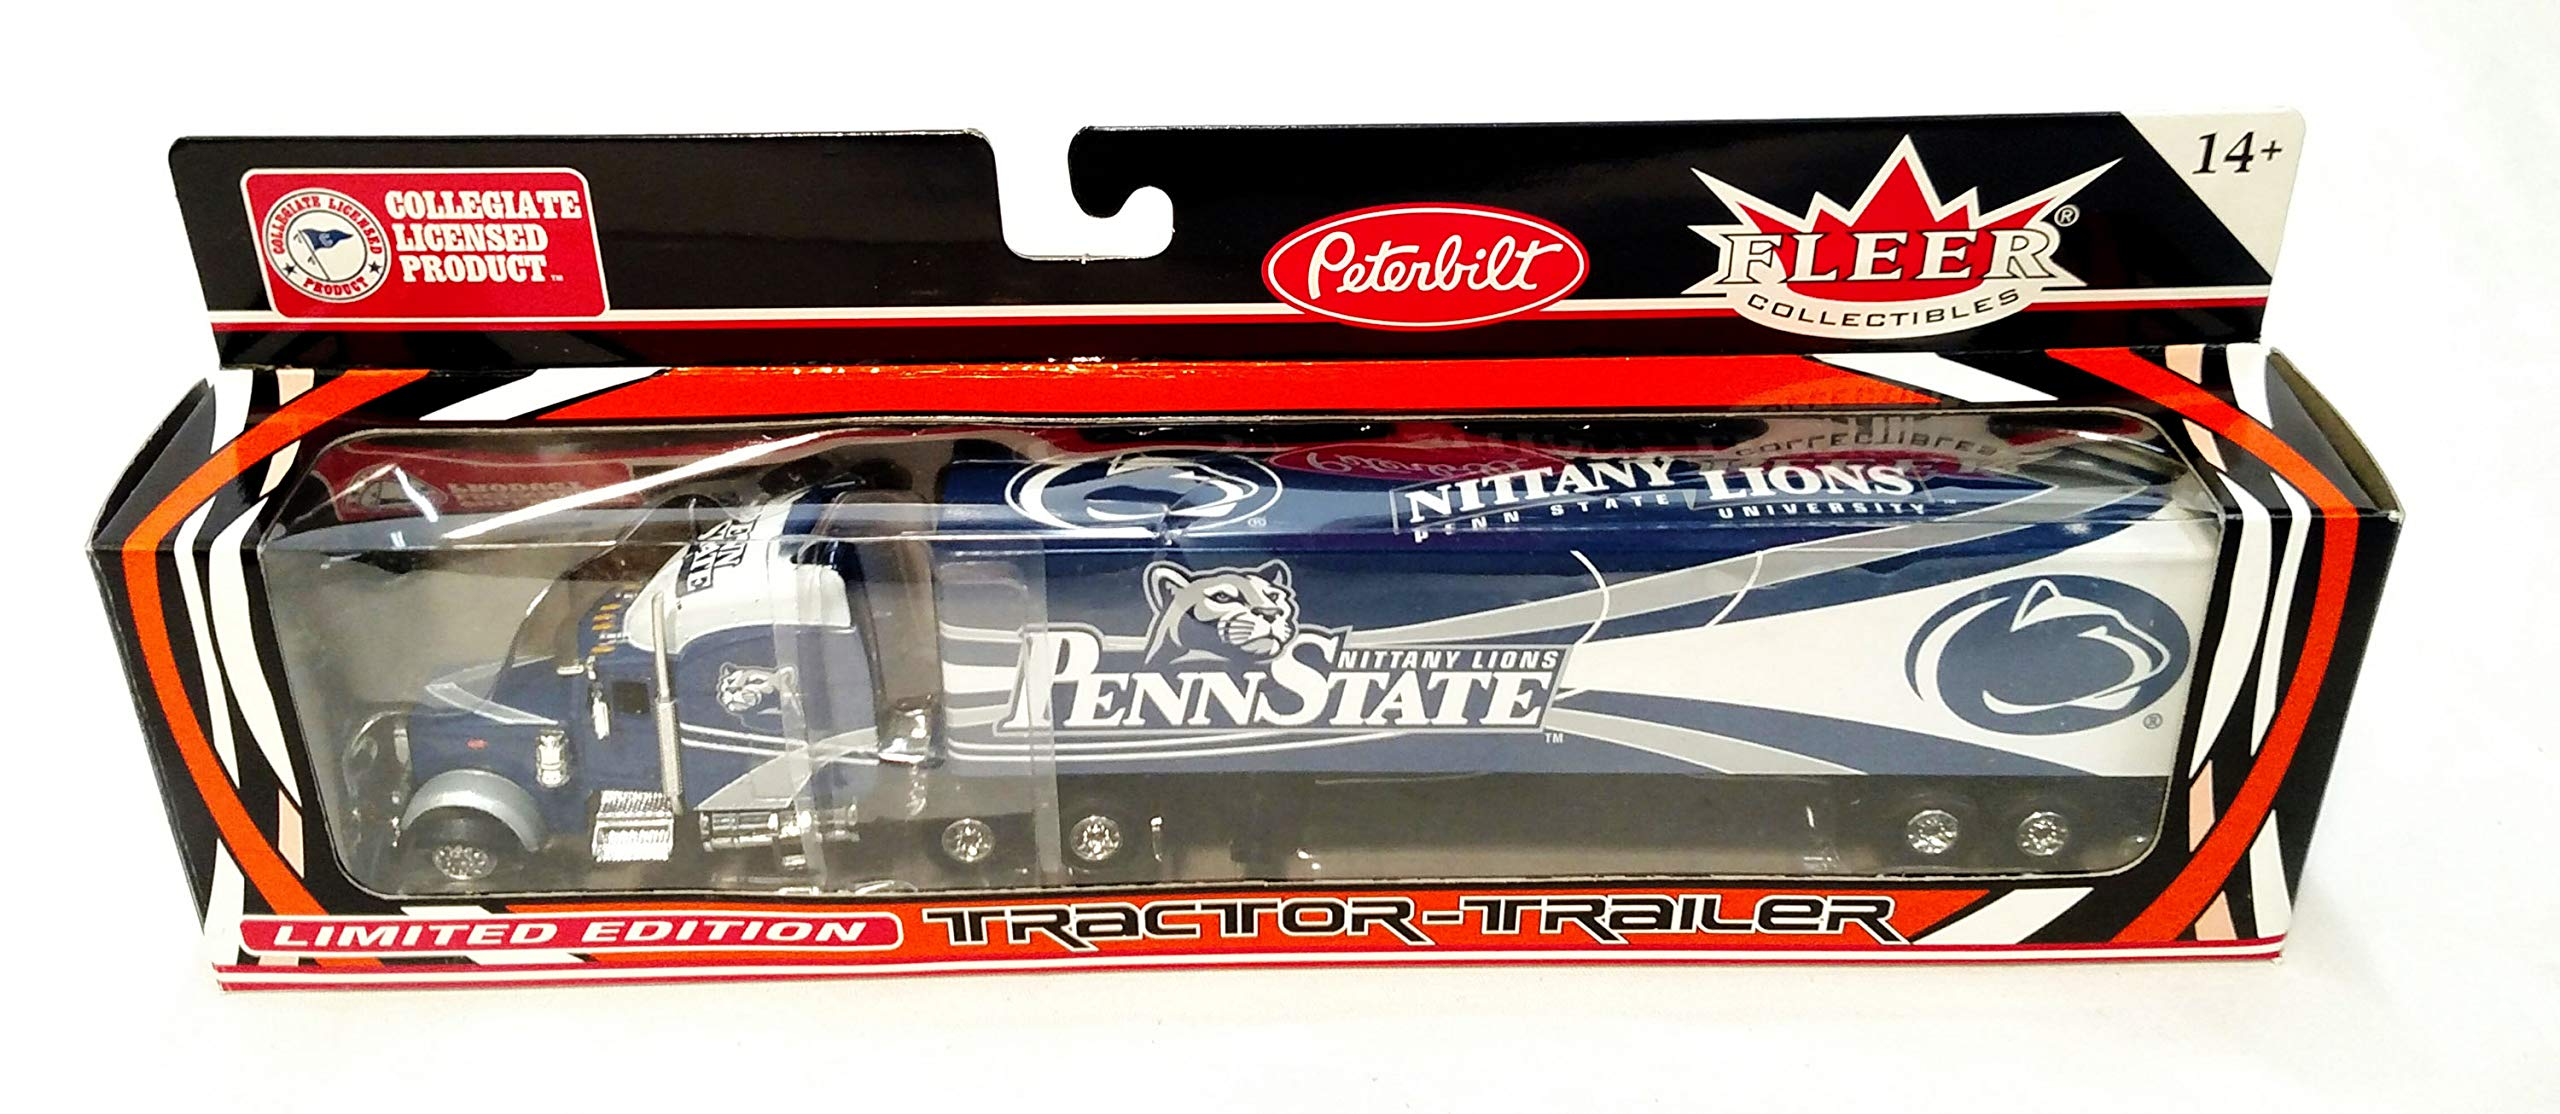 Penn State University Nittany Lions 2005 Limited Edition Die Cast Tractor Trailer